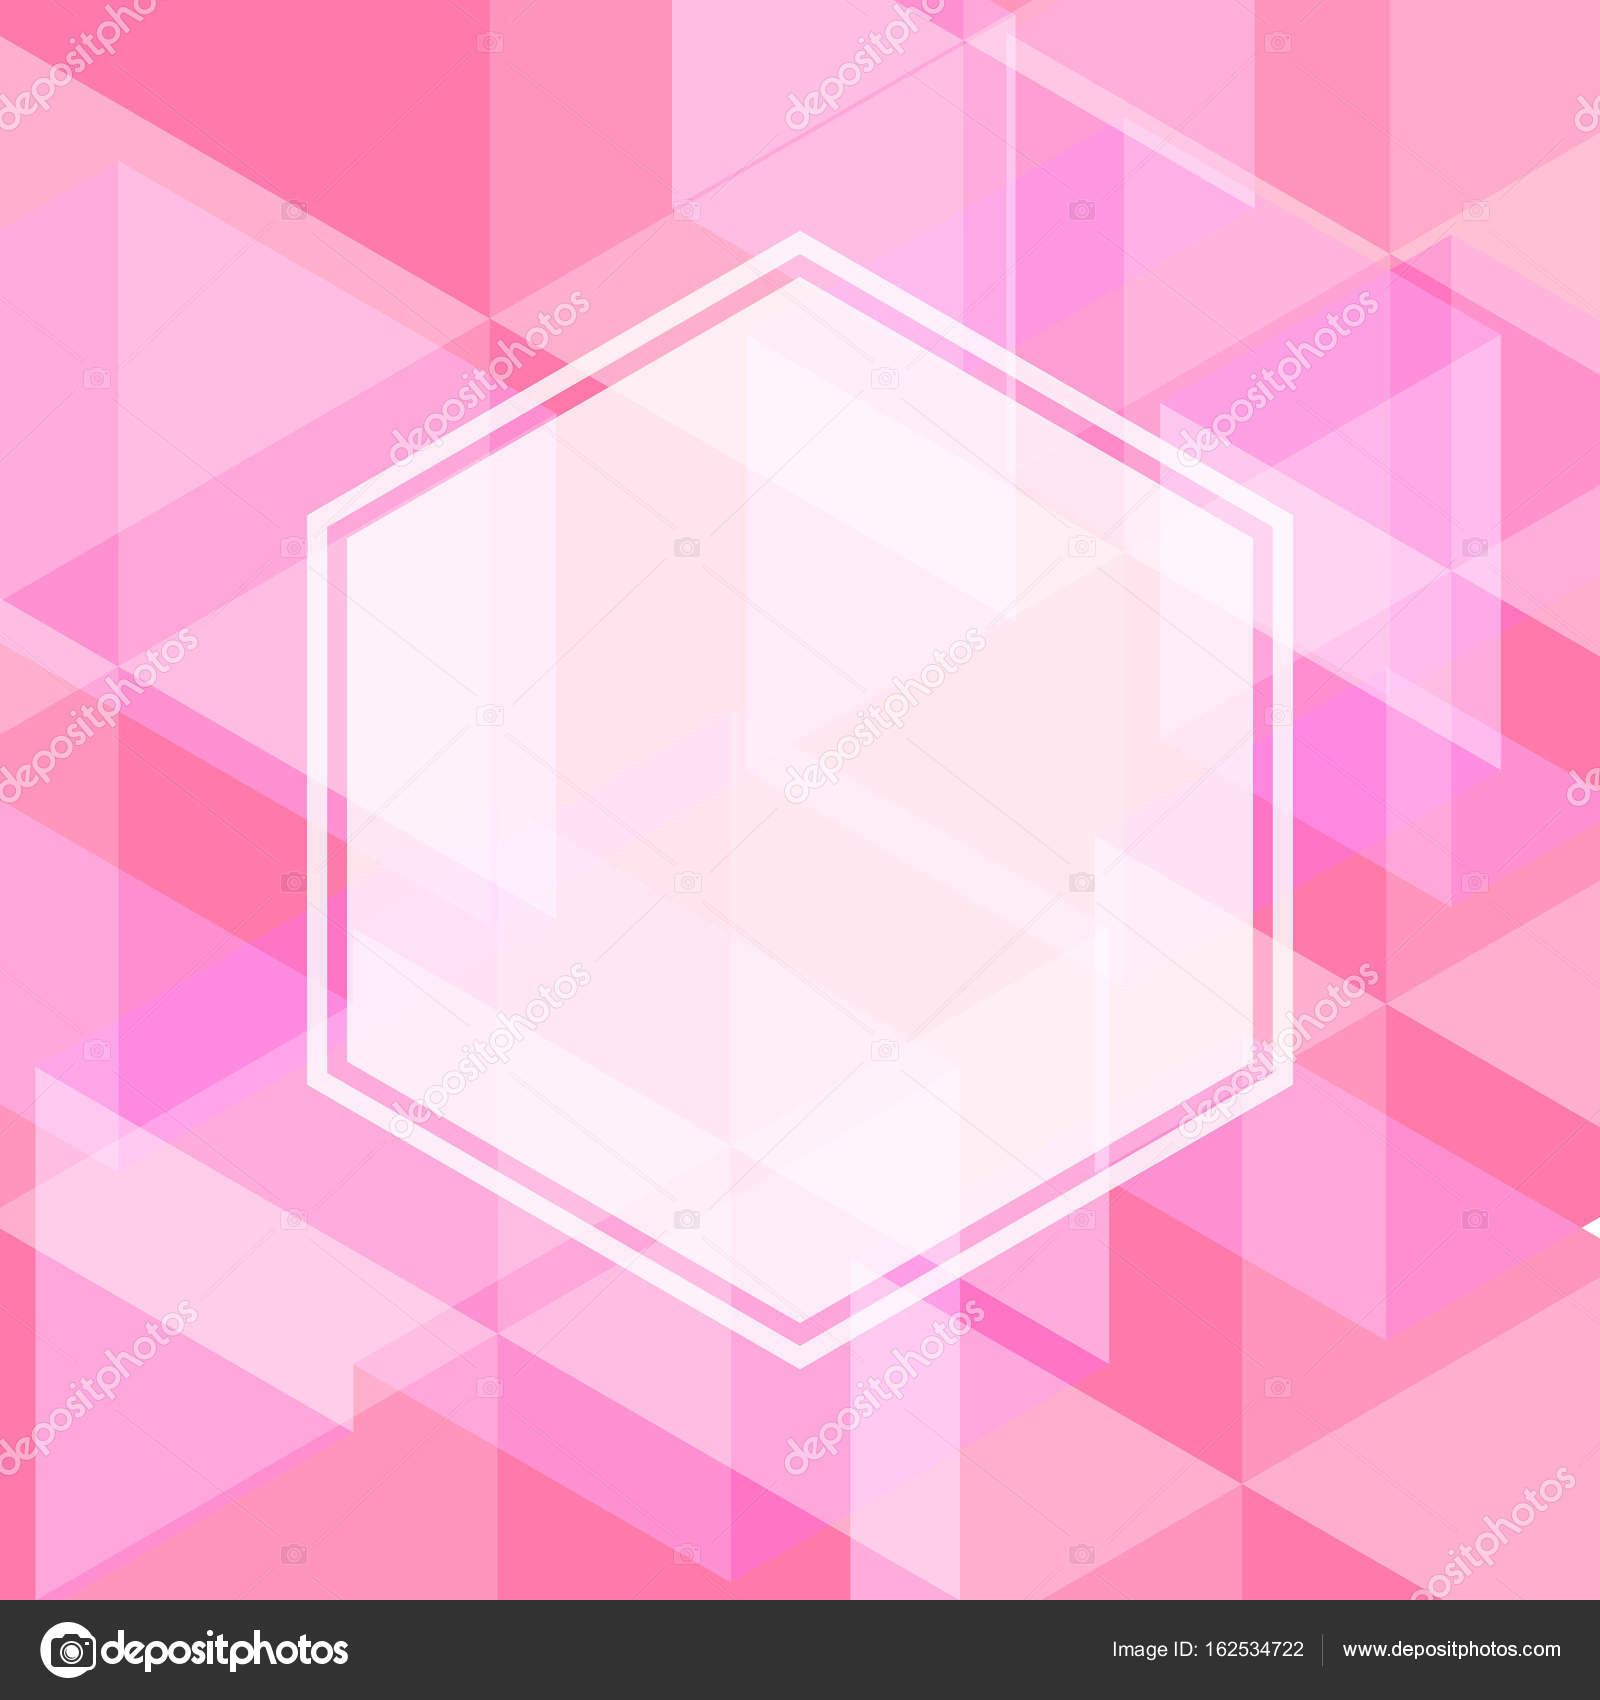 abstract pink color of geometric shape with blank space of white